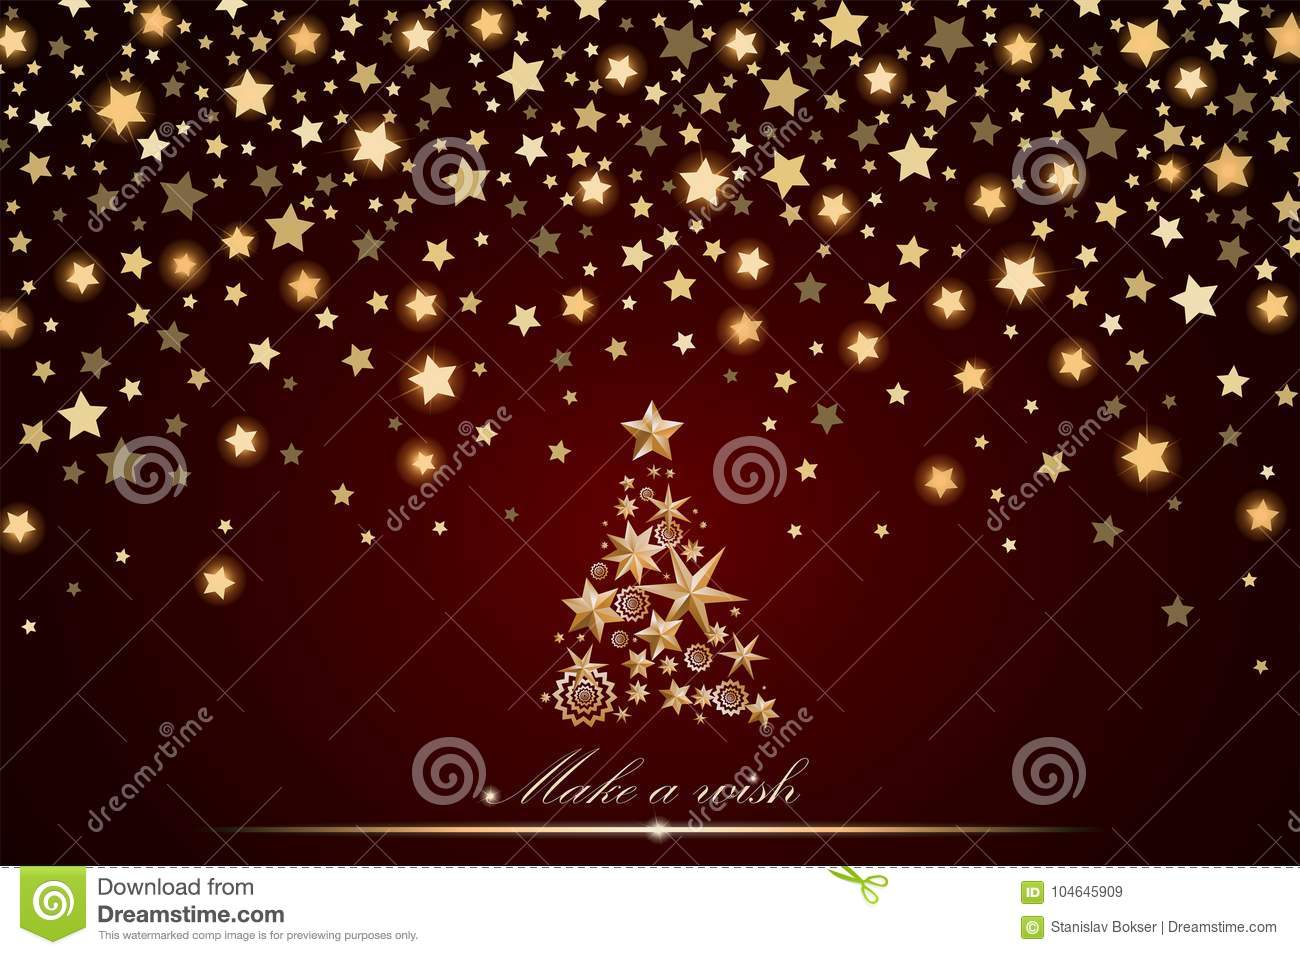 new year and christmas card design gold christmas tree made of